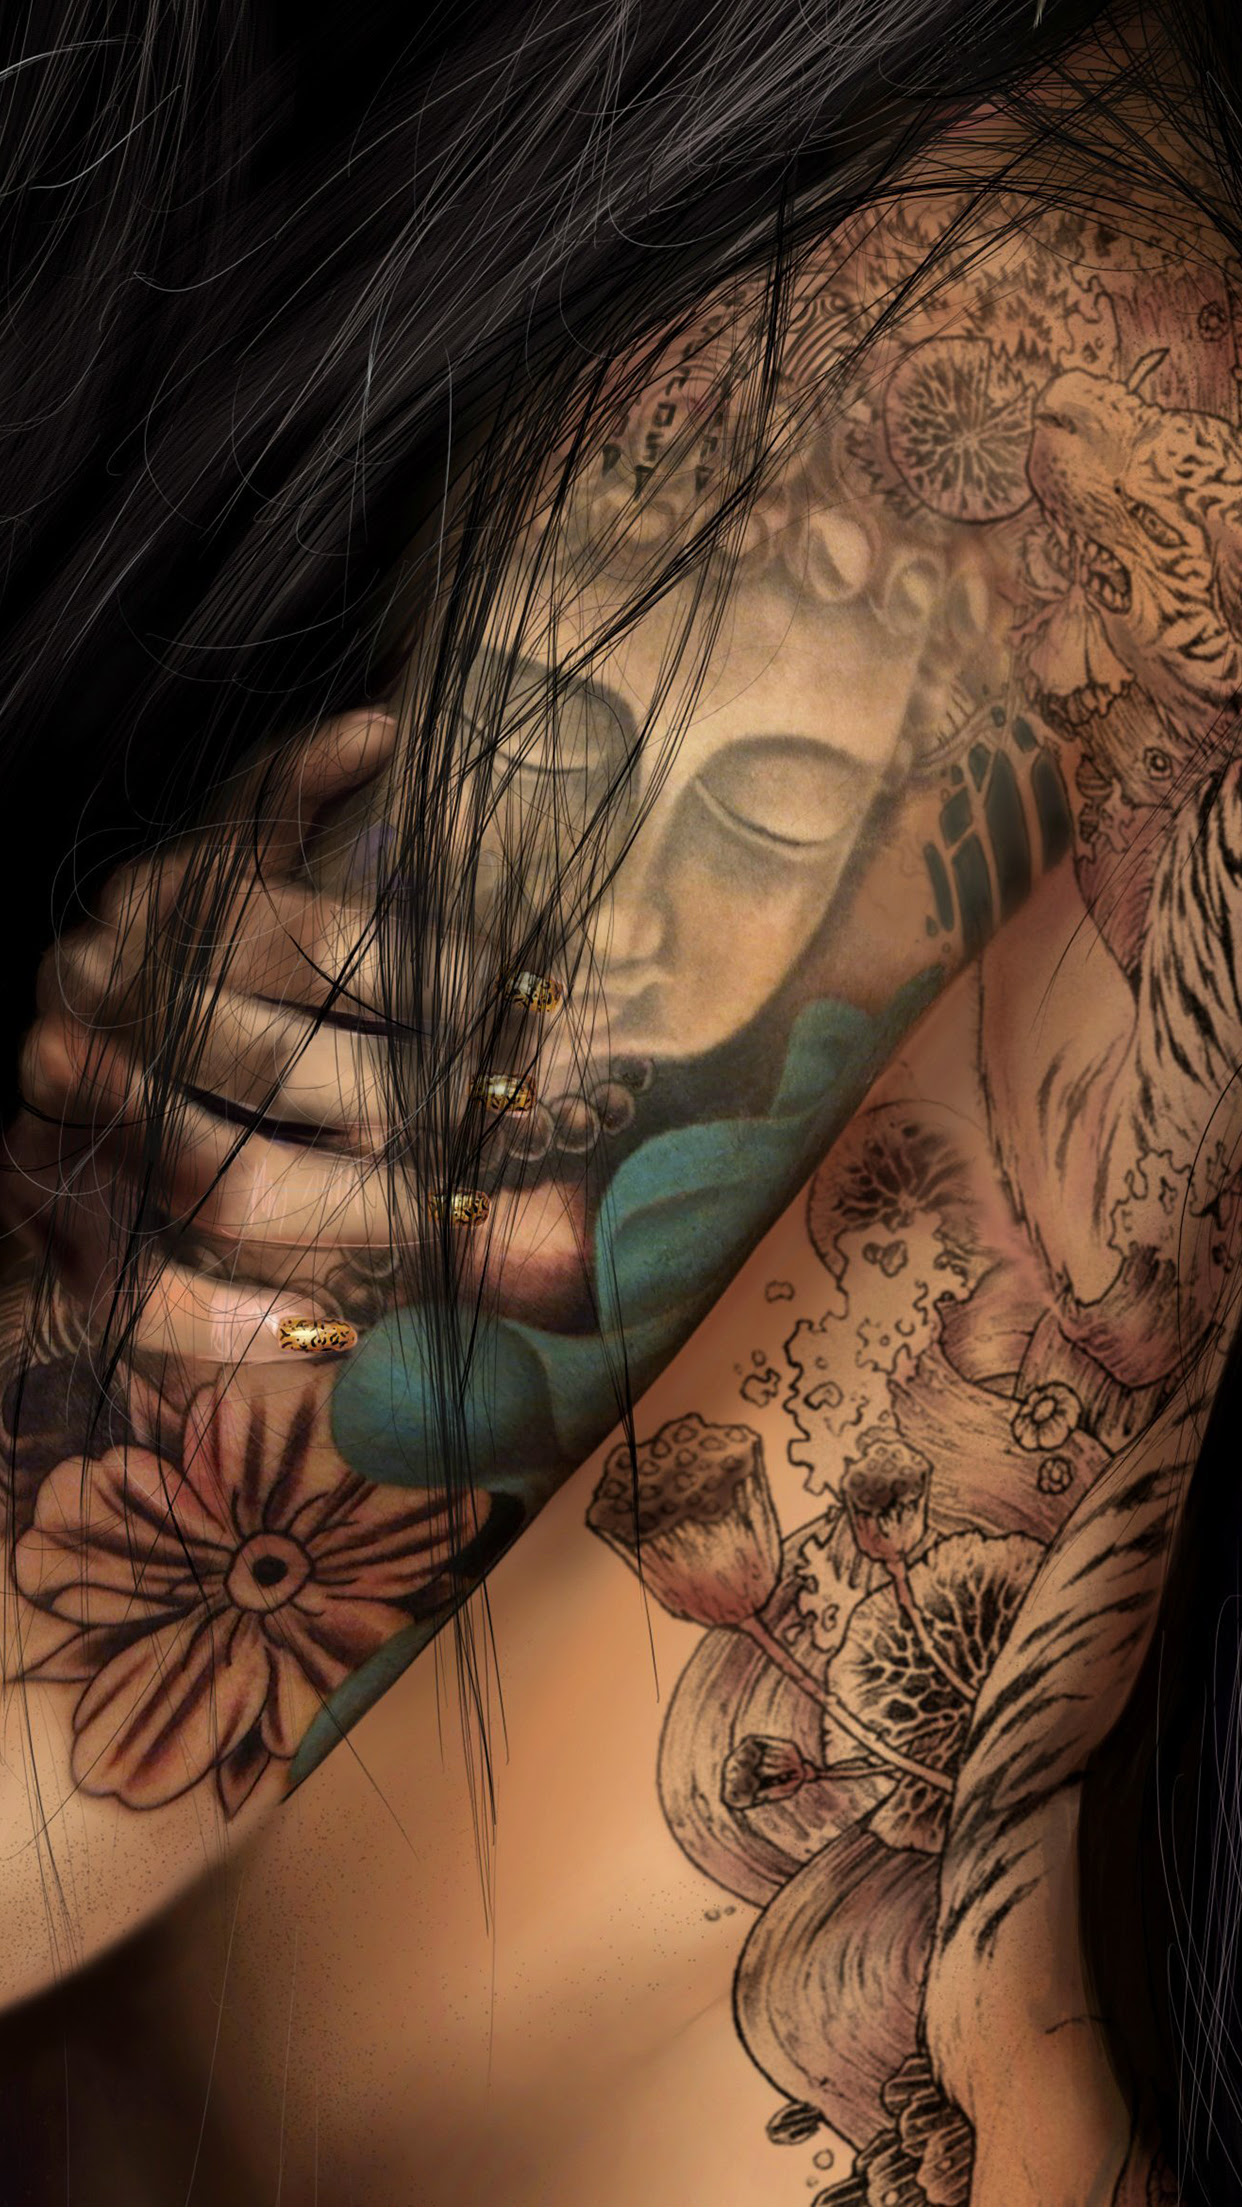 Girl Tattoo Wallpaper For Iphone 11 Pro Max X 8 7 6 Free